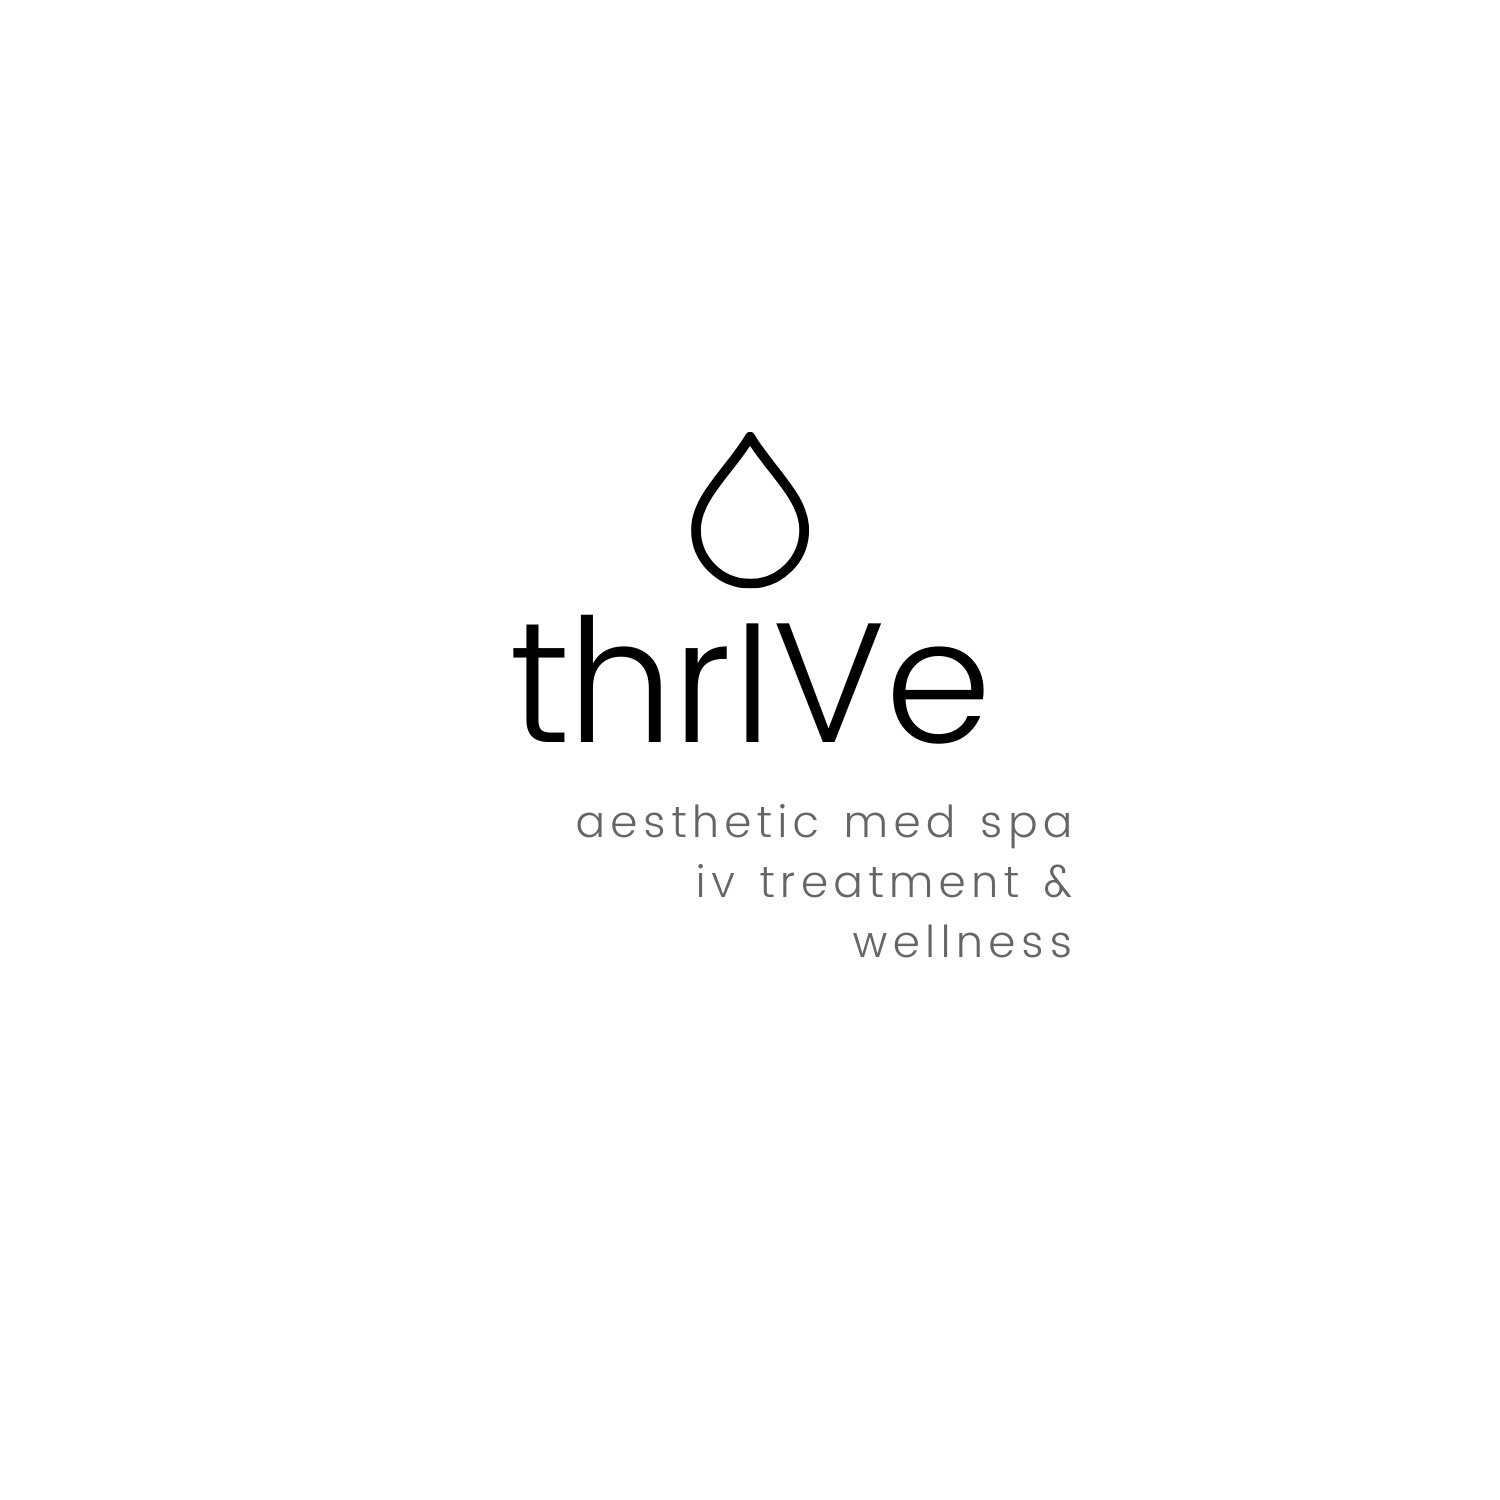 thrive | aesthetic med spa